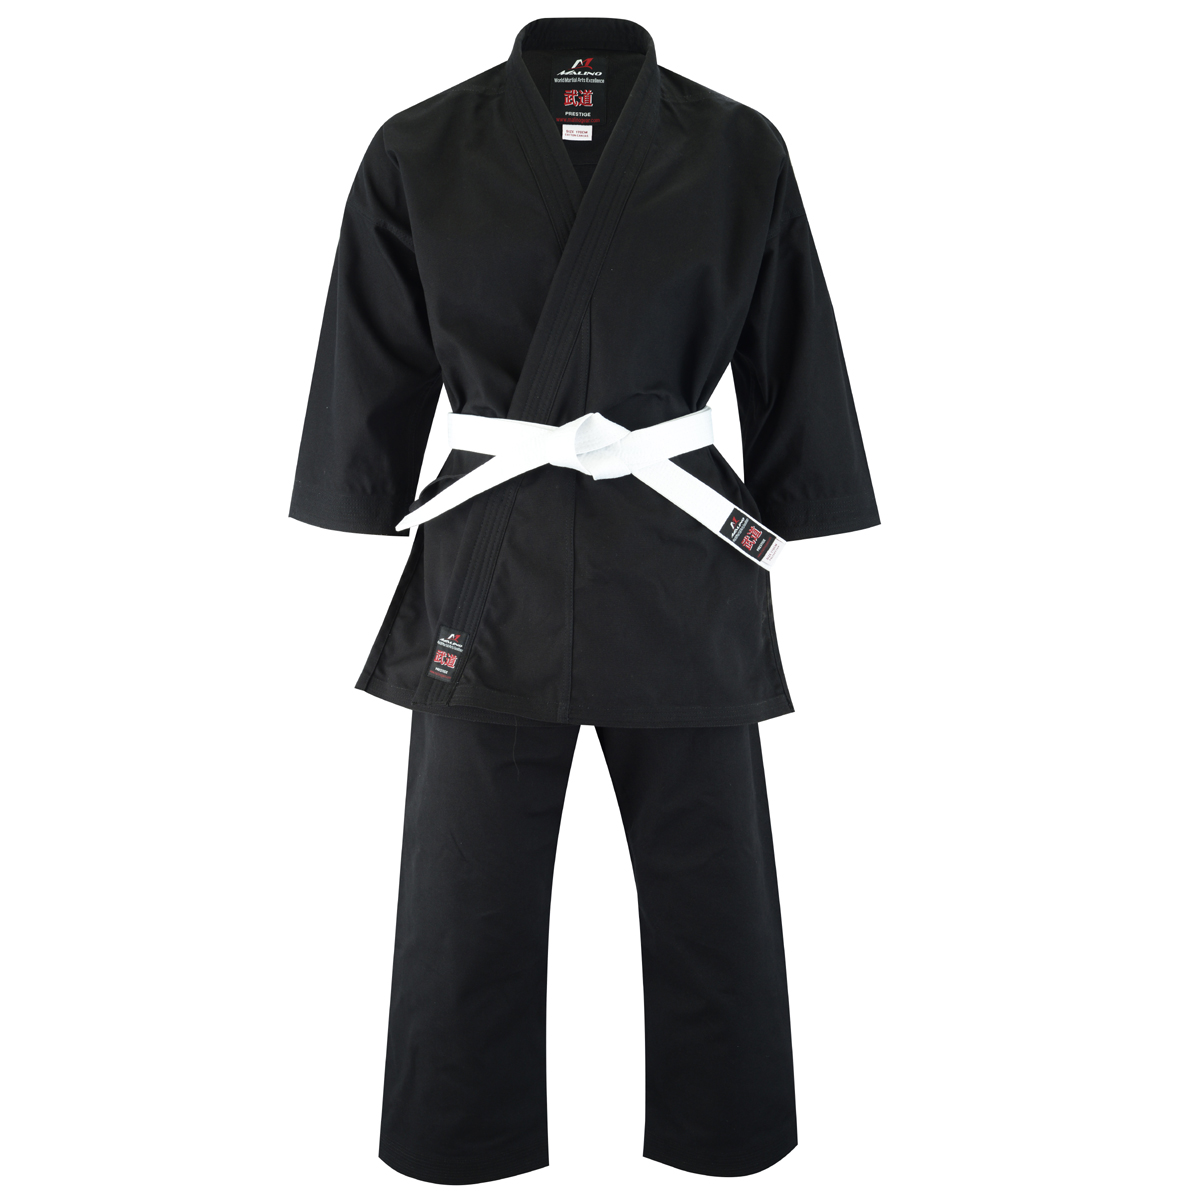 Malino Professional Kids Karate Suit - 14oz Reactive Black